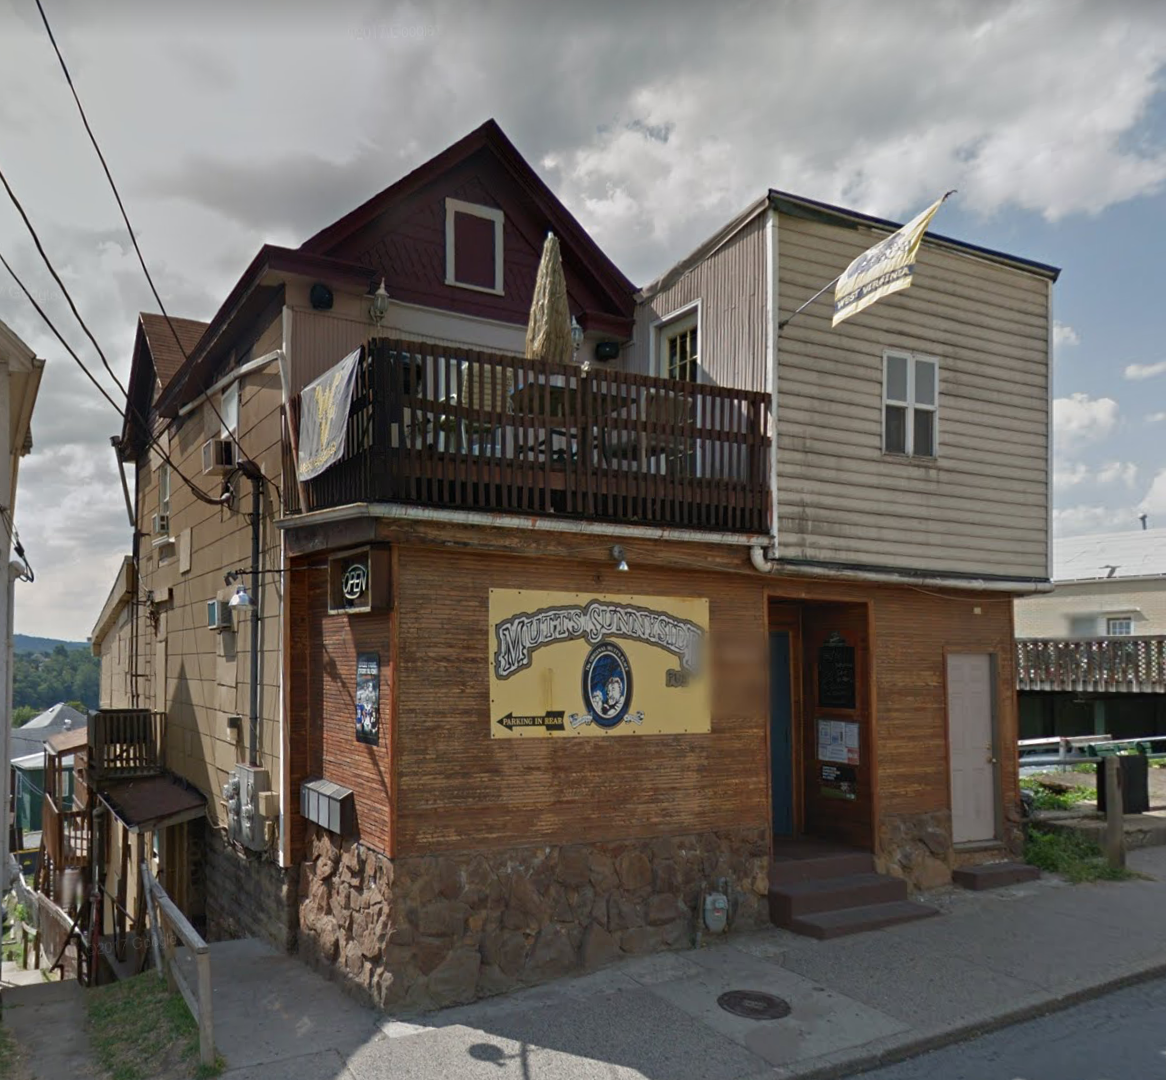 The second location of Mutt's Sunnyside Place was demolished in 2013 to make way for University Place, a multiuse apartment complex within walking distance of WVU's Downtown campus. Google Street View.